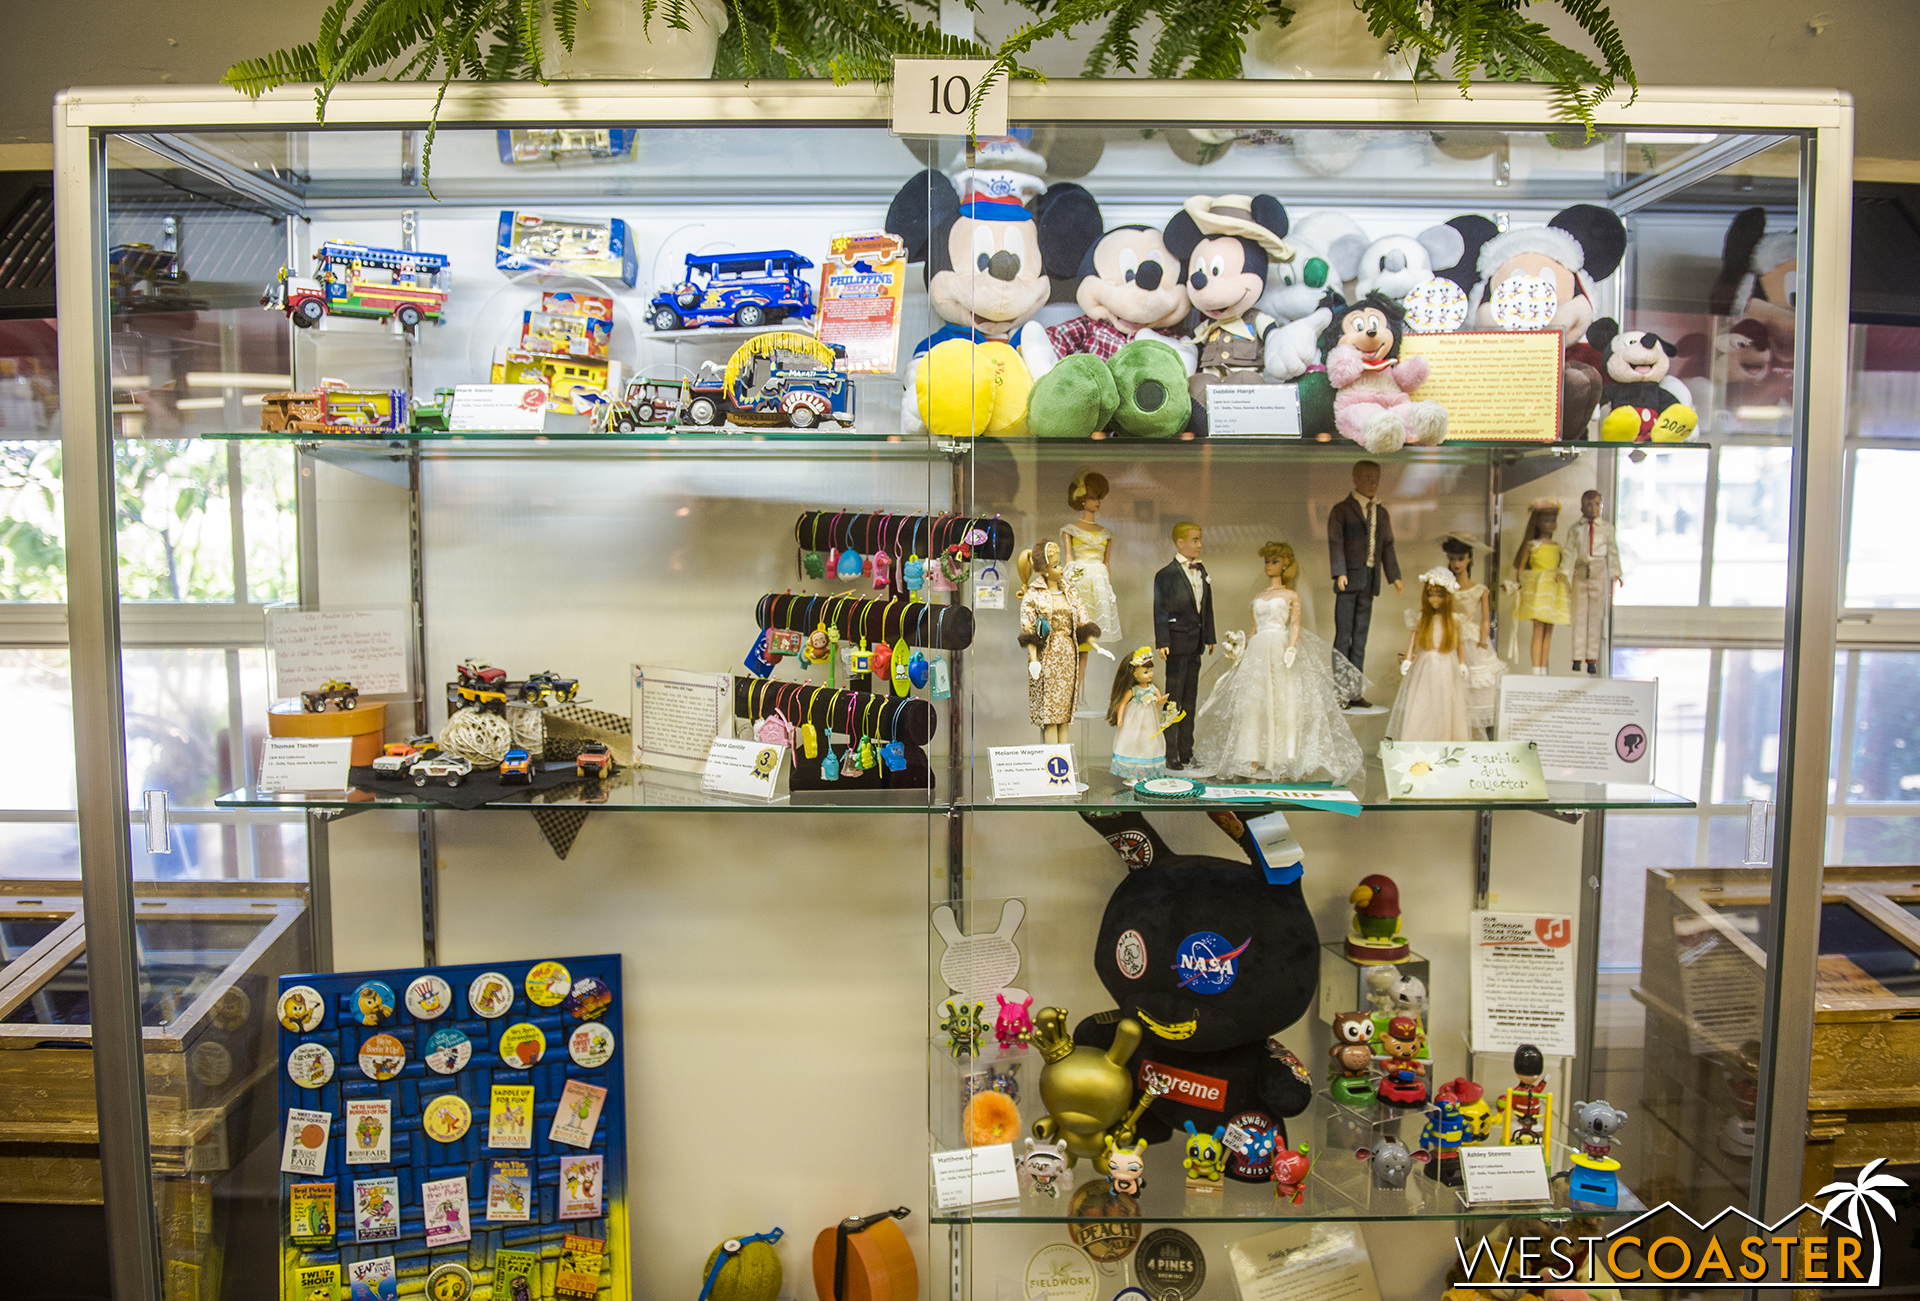 At the hall next to Crafters Village in Centennial Farms, the Collections exhibit—which sometimes features some pretty bizarre items that people collect—can be found.